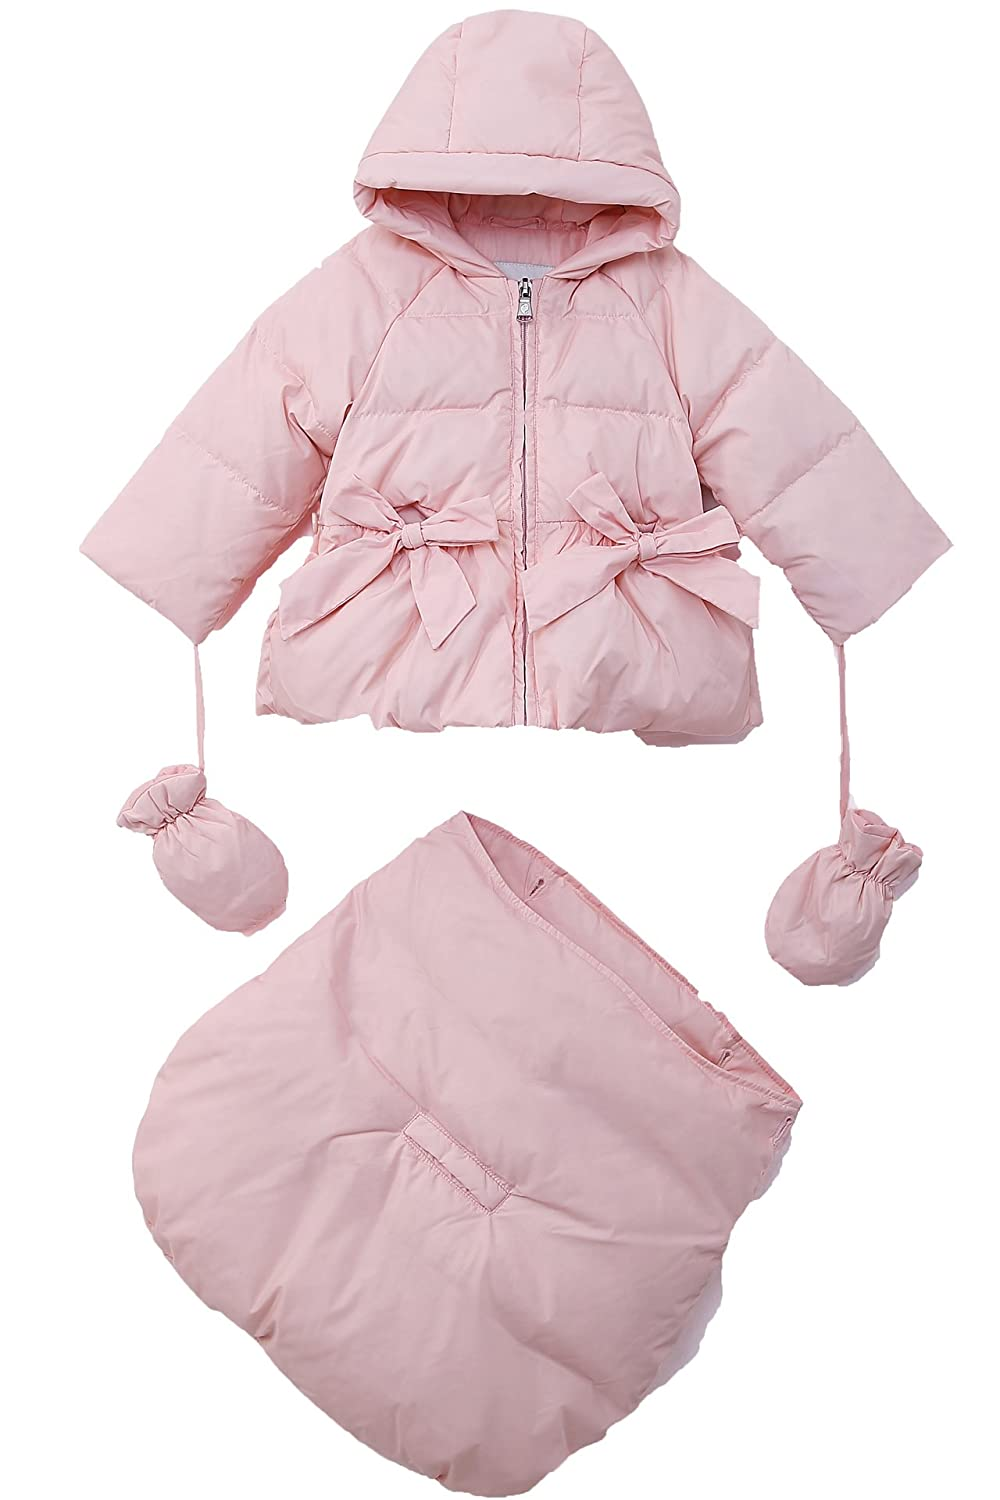 61d339e13 Oceankids Baby Girls Newborn Pram Down Bunting Snowsuit Detachable ...